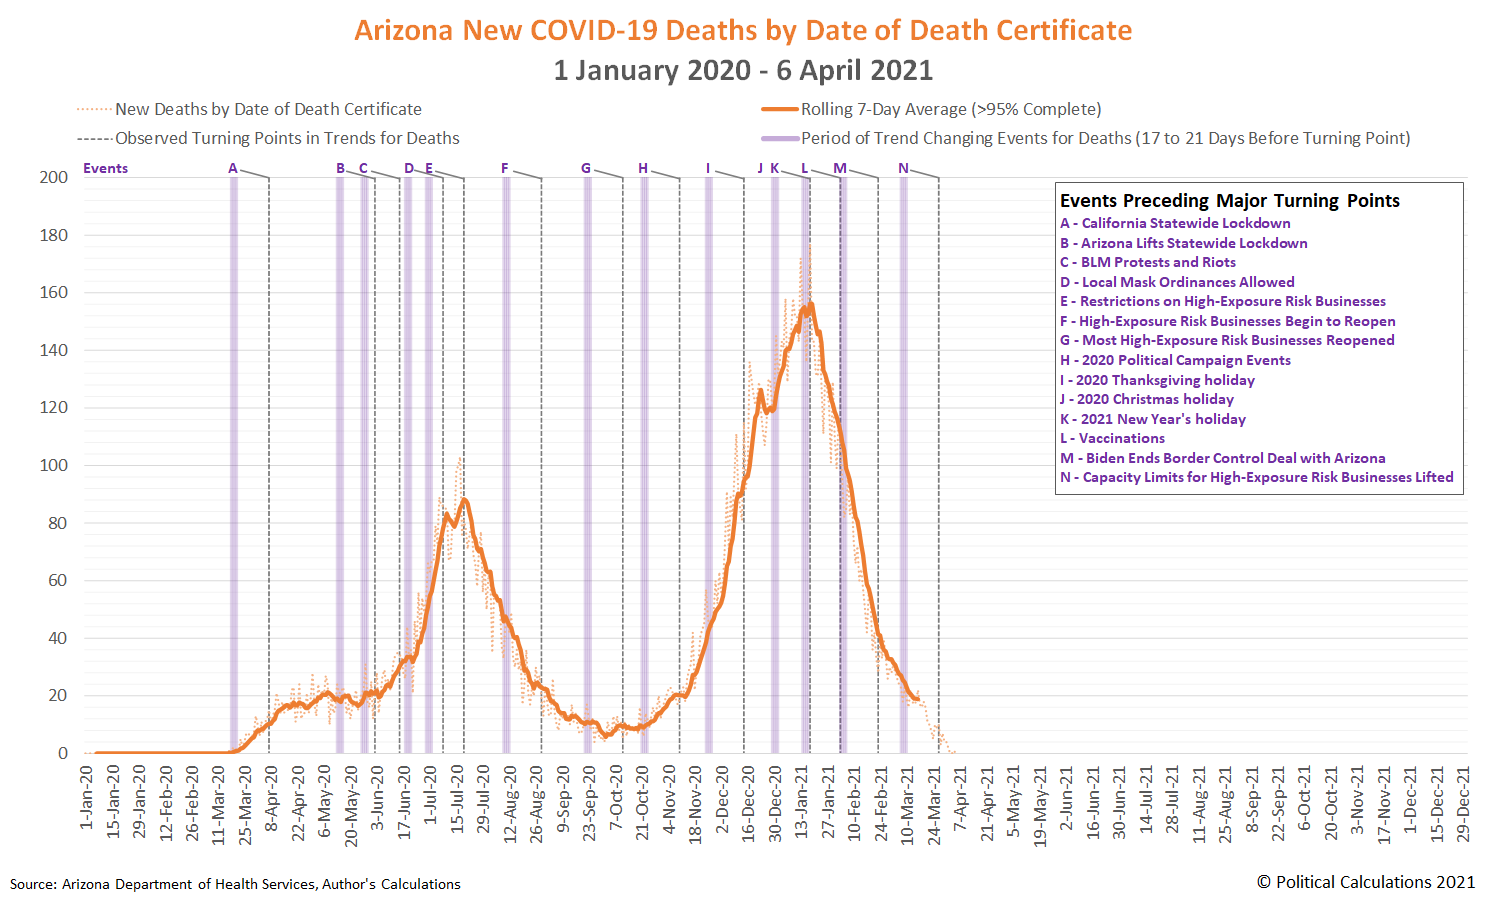 Arizona New COVID-19 Deaths by Date of Death Certificate, 1 January 2020 - 6 April 2021